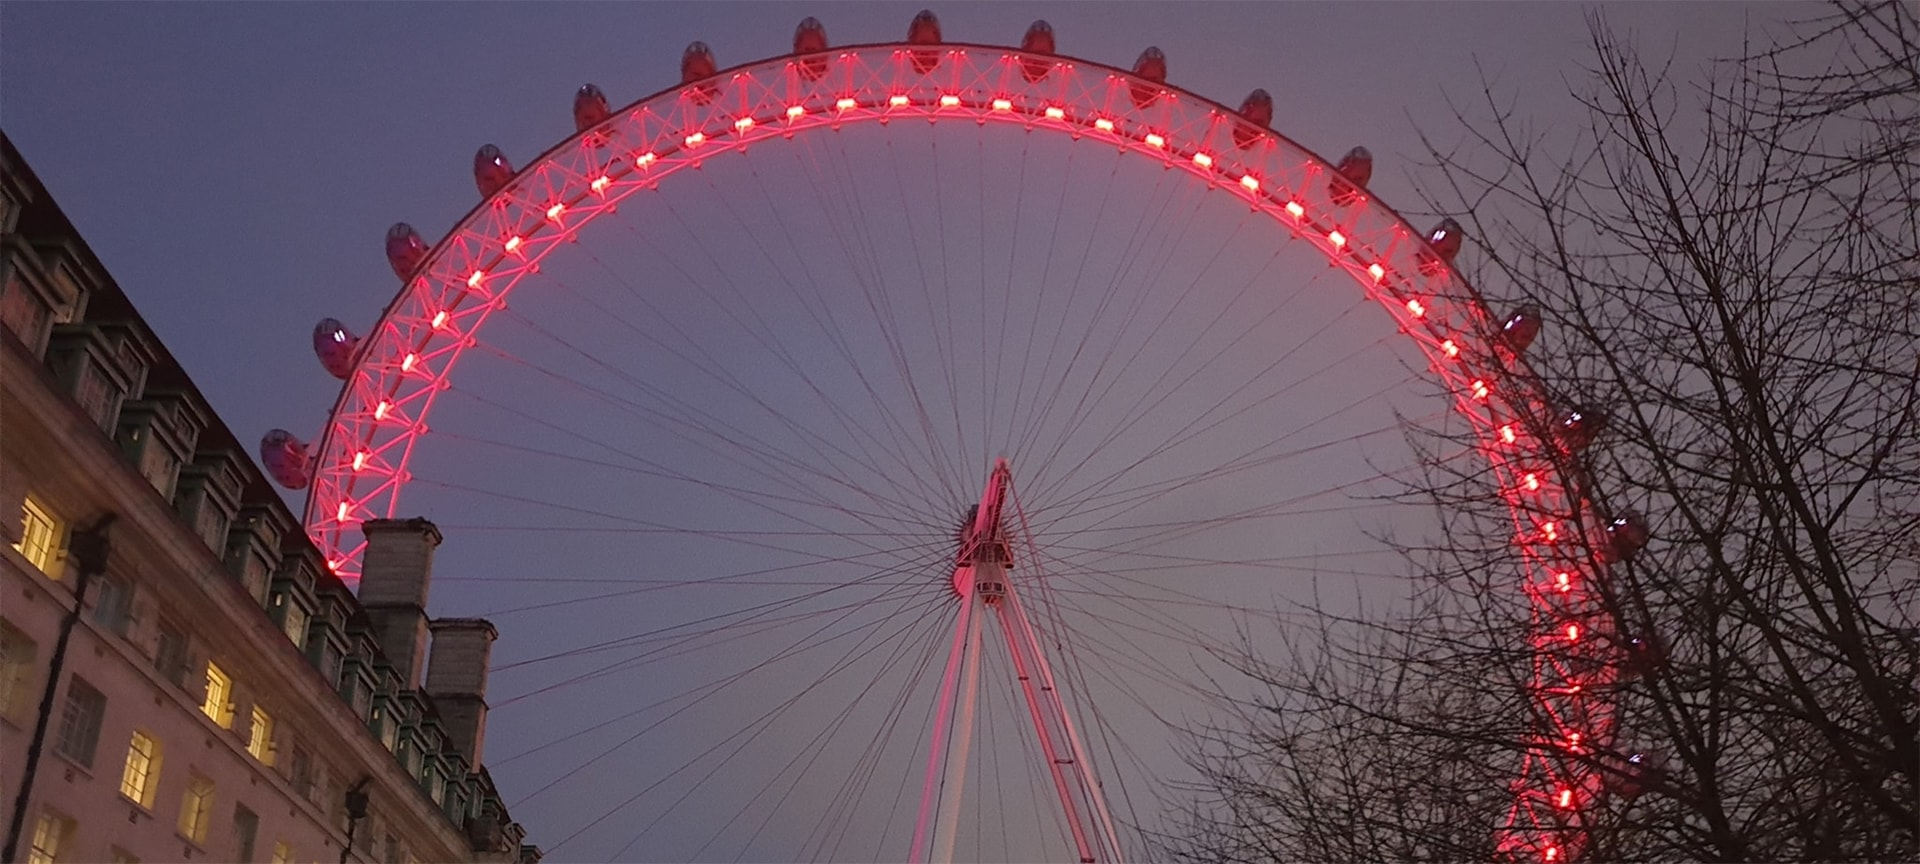 Back in February 2020, the London Eye underwent a striking rebrand. Lastminute.com's sponsorship deal saw the angry red glow people became accustomed to seeing since 2015, make way for a delicious shade of hot pink. Aesthetically, it's be a more soothing sight — slotting in well with the shimmering cool blues of neighbouring buildings along the South Bank.